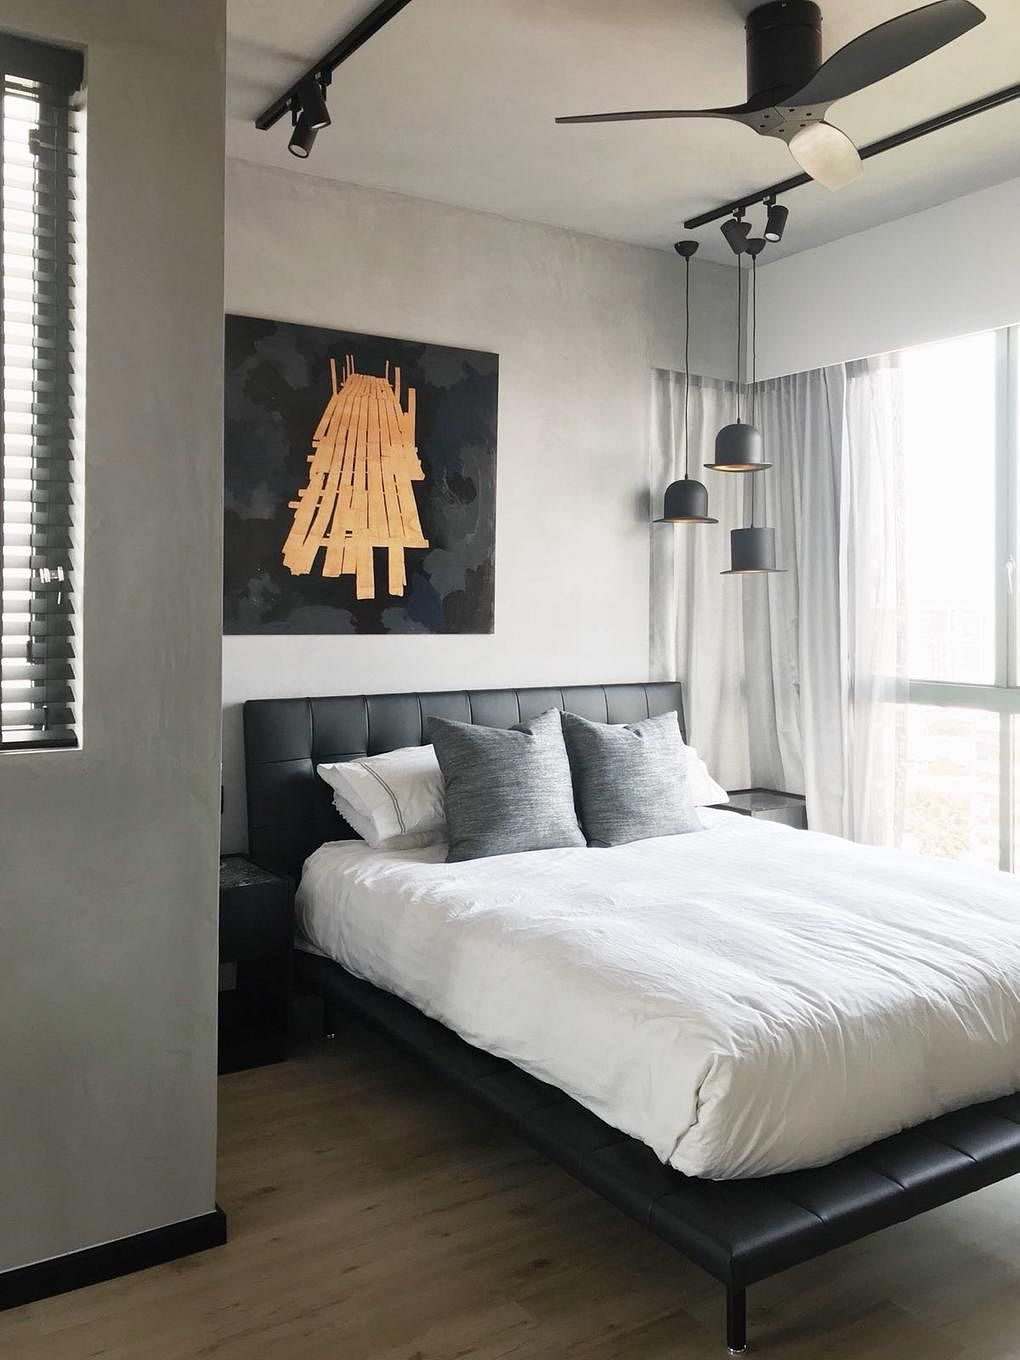 10 stylish bedrooms decorated with art   Home & Decor Singapore